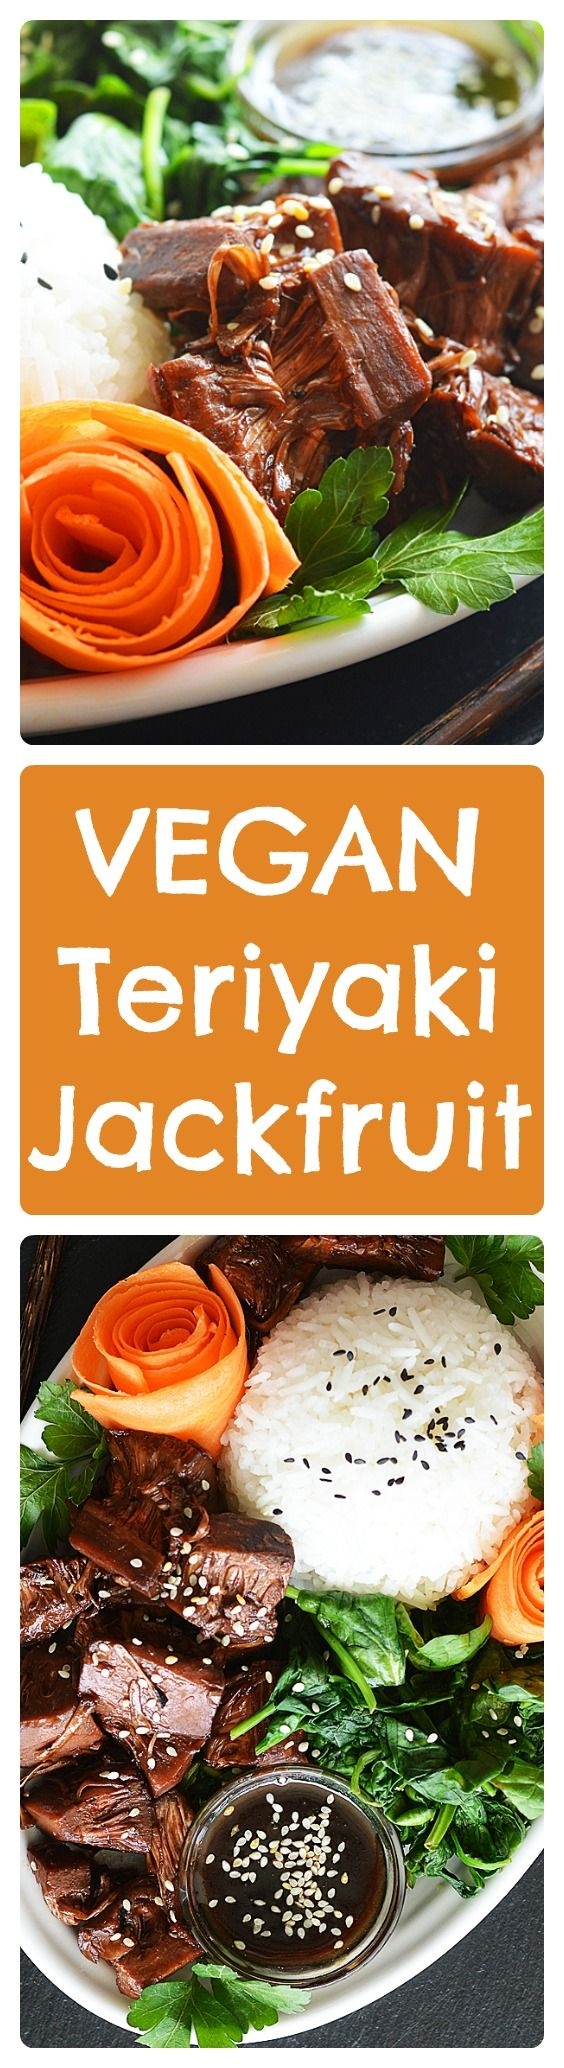 Vegan Teriyaki Jackfruit Bowl by The Veg Life! Jackfruit is sauteed in a Teriyaki sauce which turns into a thick glaze. Serve with white rice, sauteed spinach and carrot roses to complete your bowl!